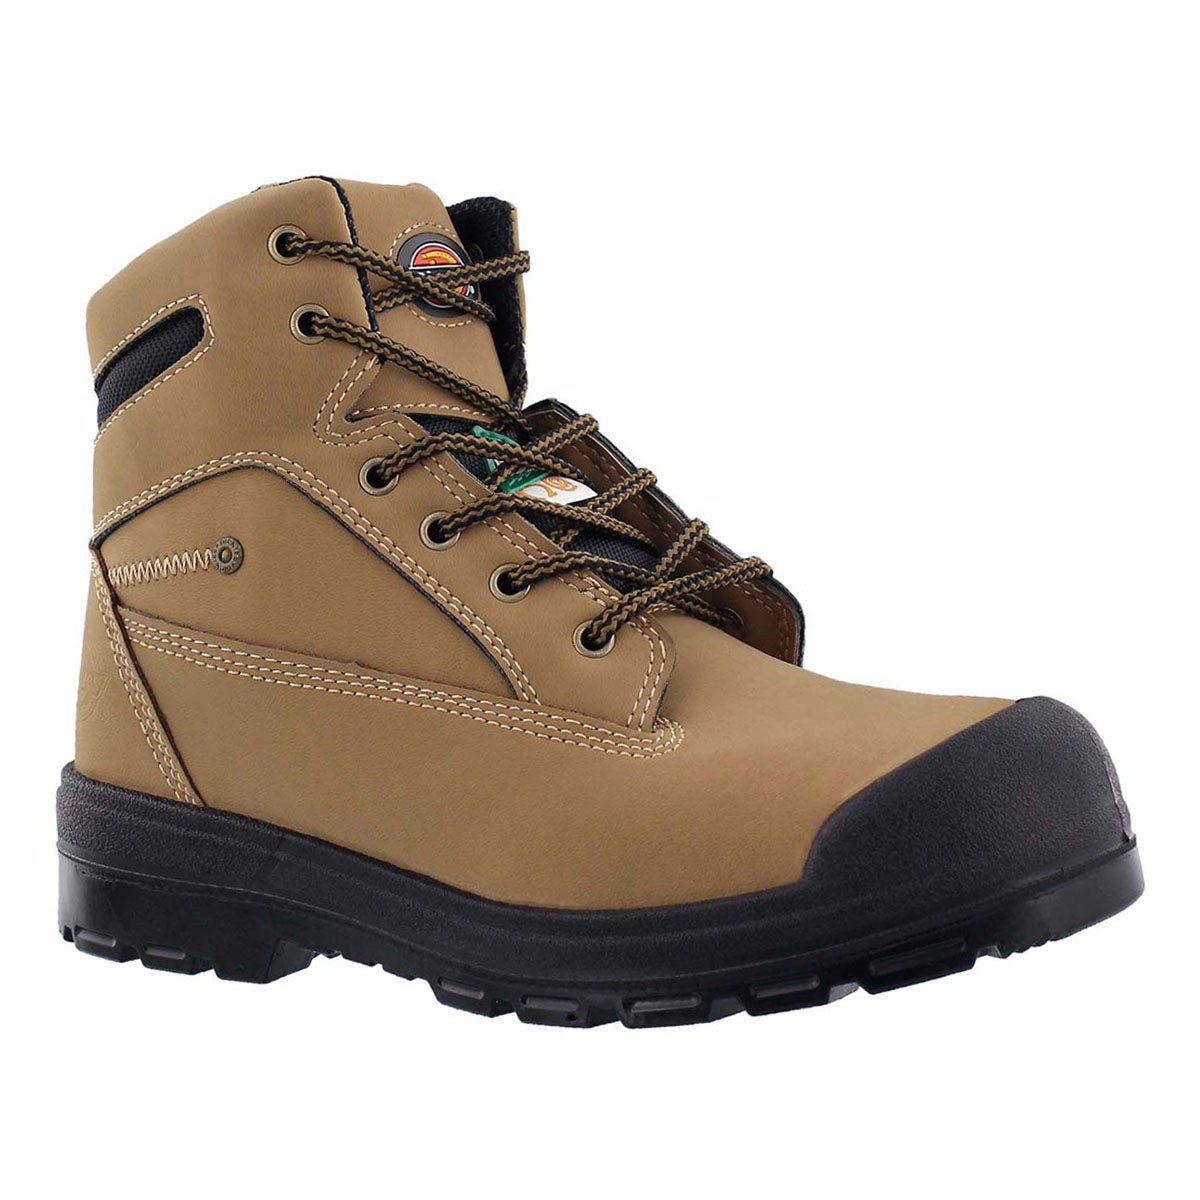 "Men's BLASTER tan lace up 6"" CSA boots"